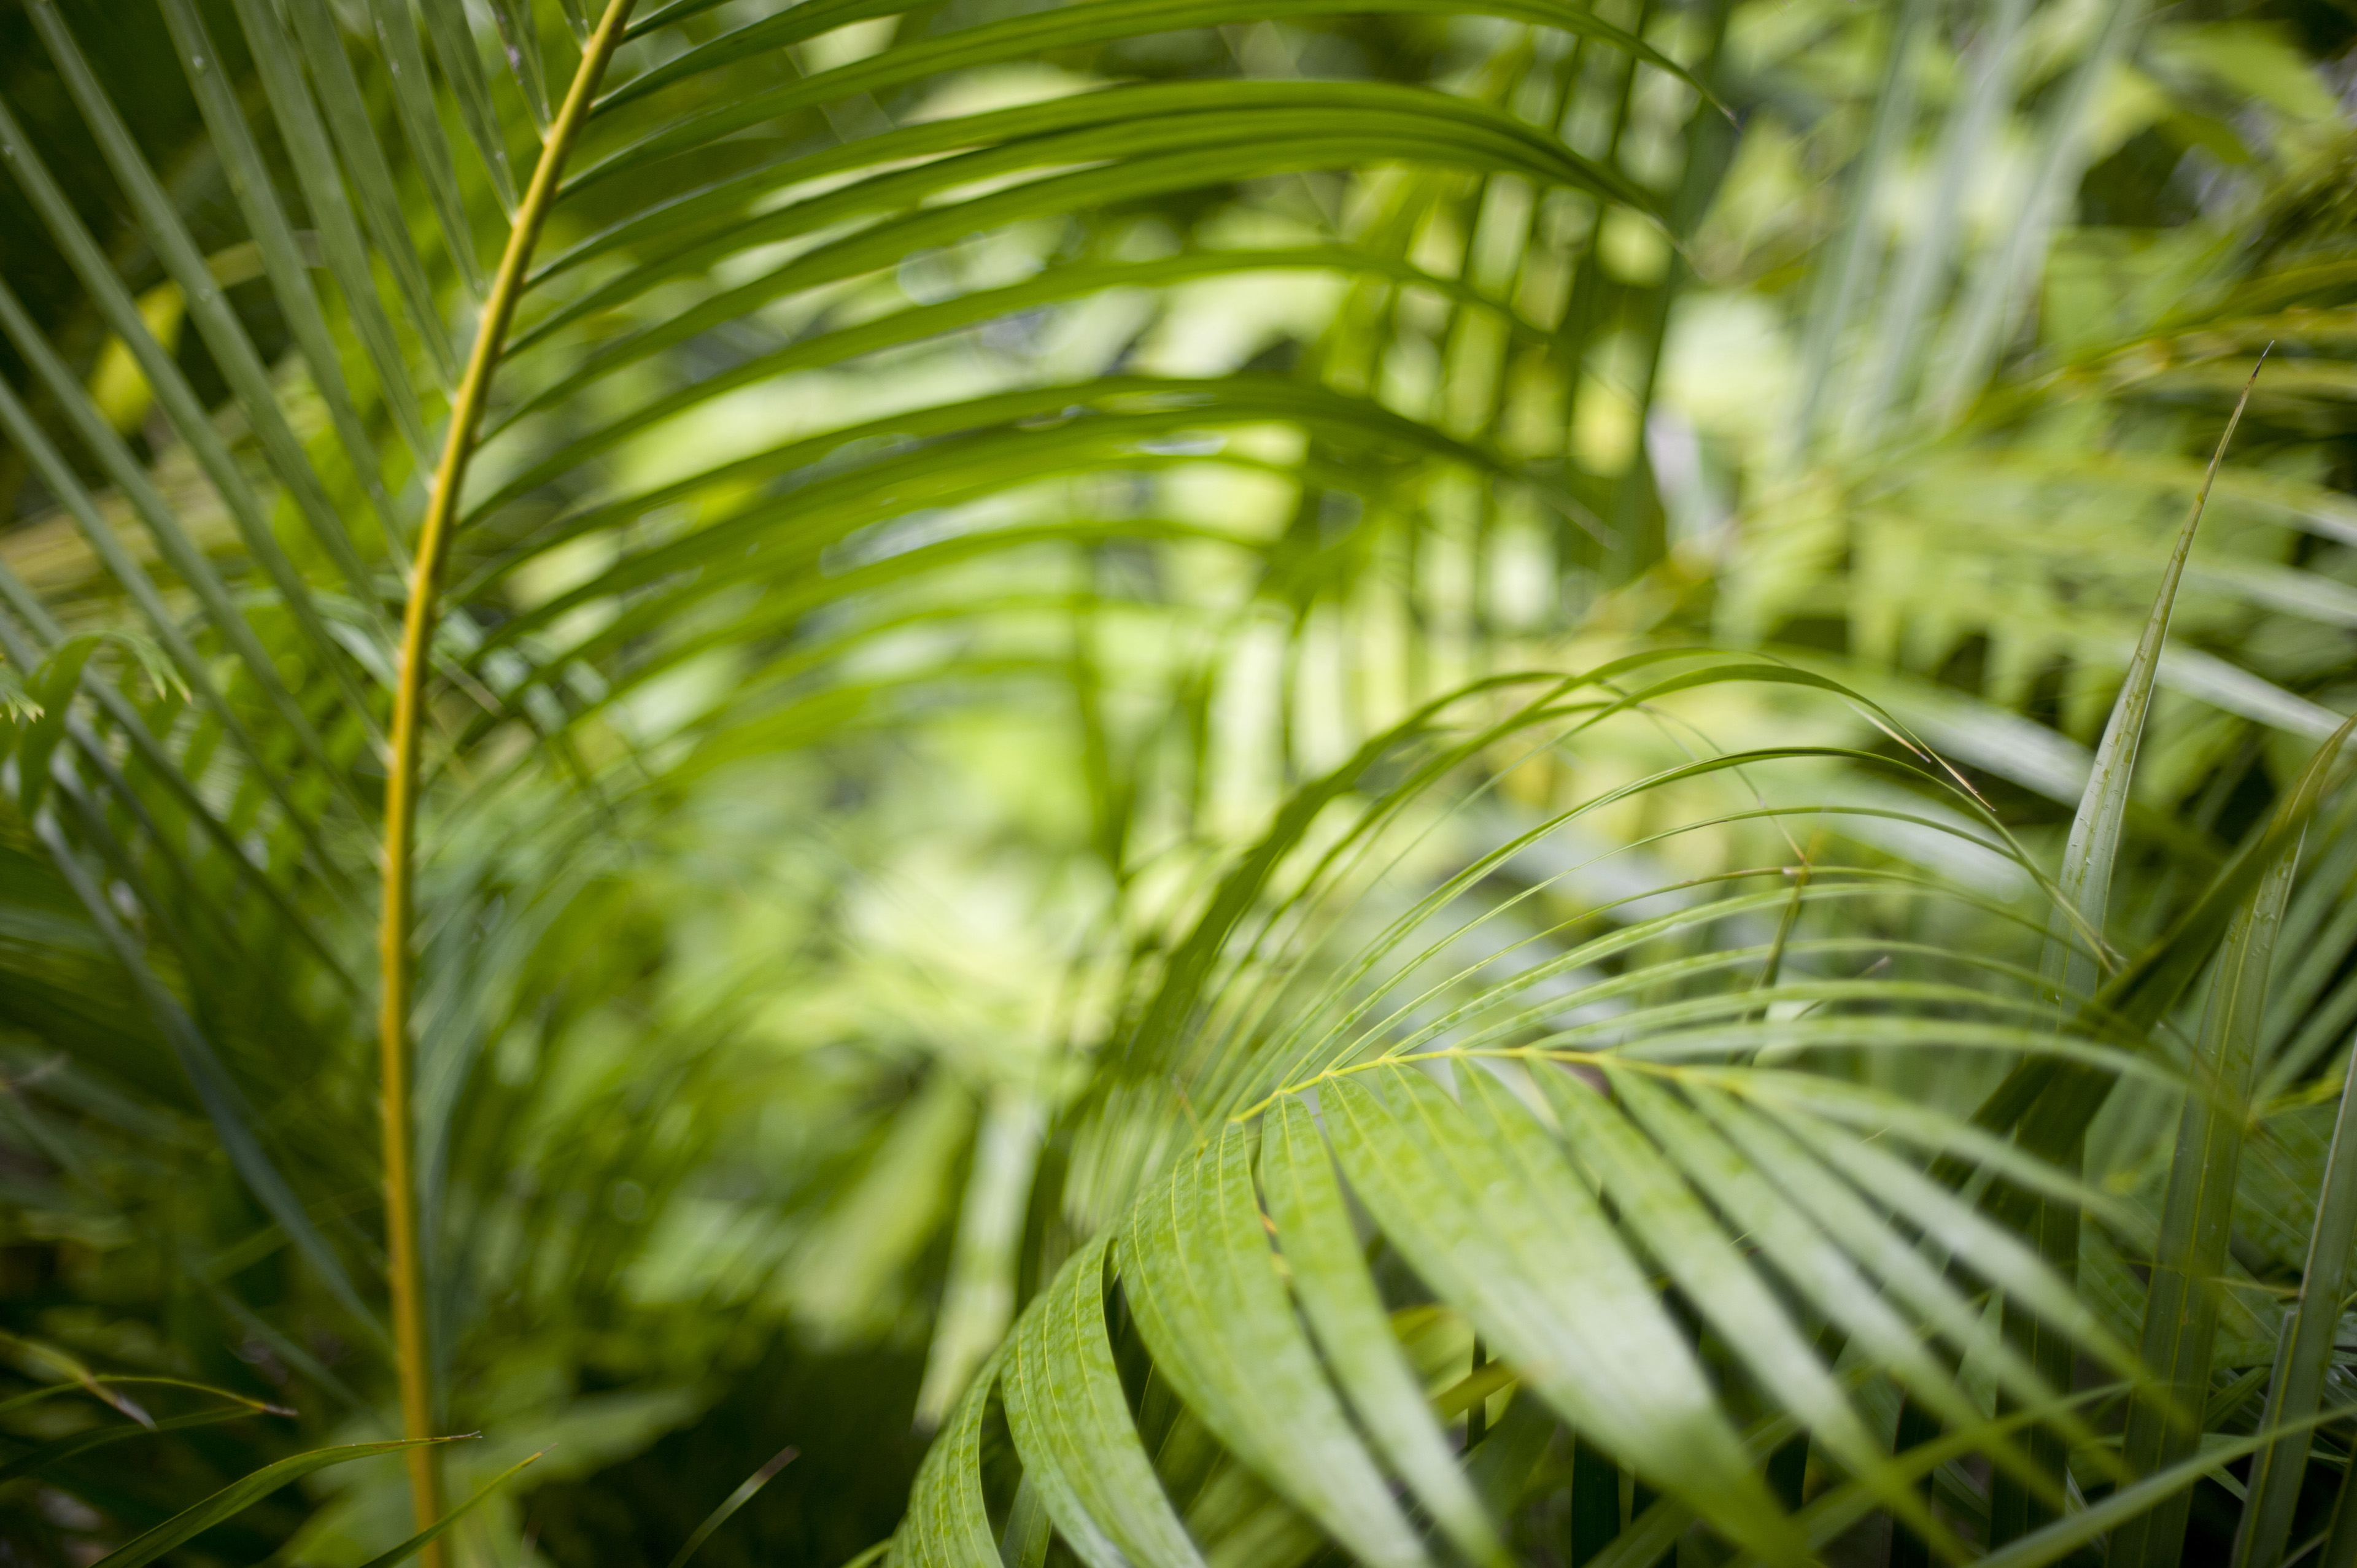 Greens fronds of a cane palm growing in a garden or tropical rainforest, close up full frame background view